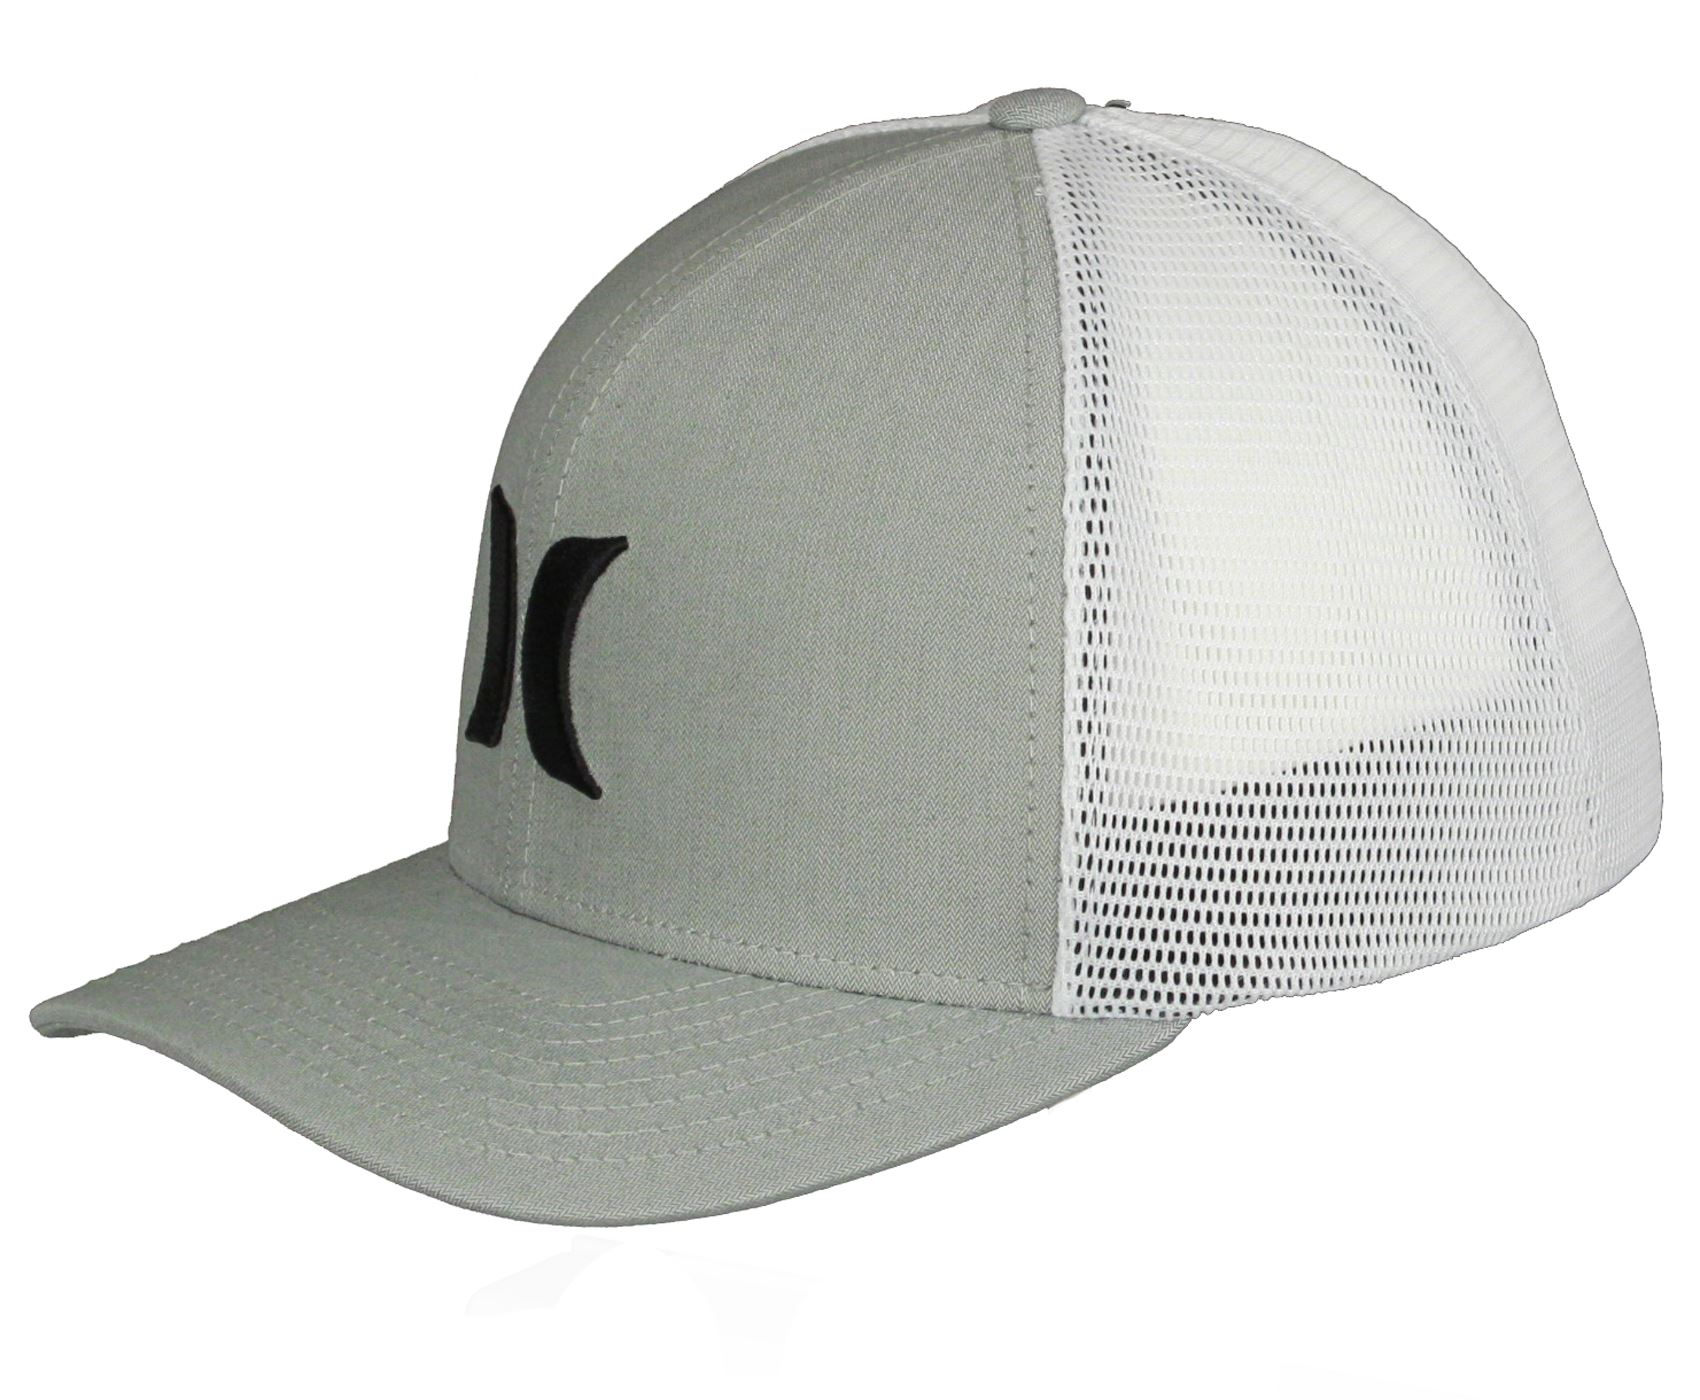 online store 85bd7 7fb90 3D embroidered Hurley logo on front. Embroidered Hurley logo and name on  back. Trucker style. 6 panel. Full crown.